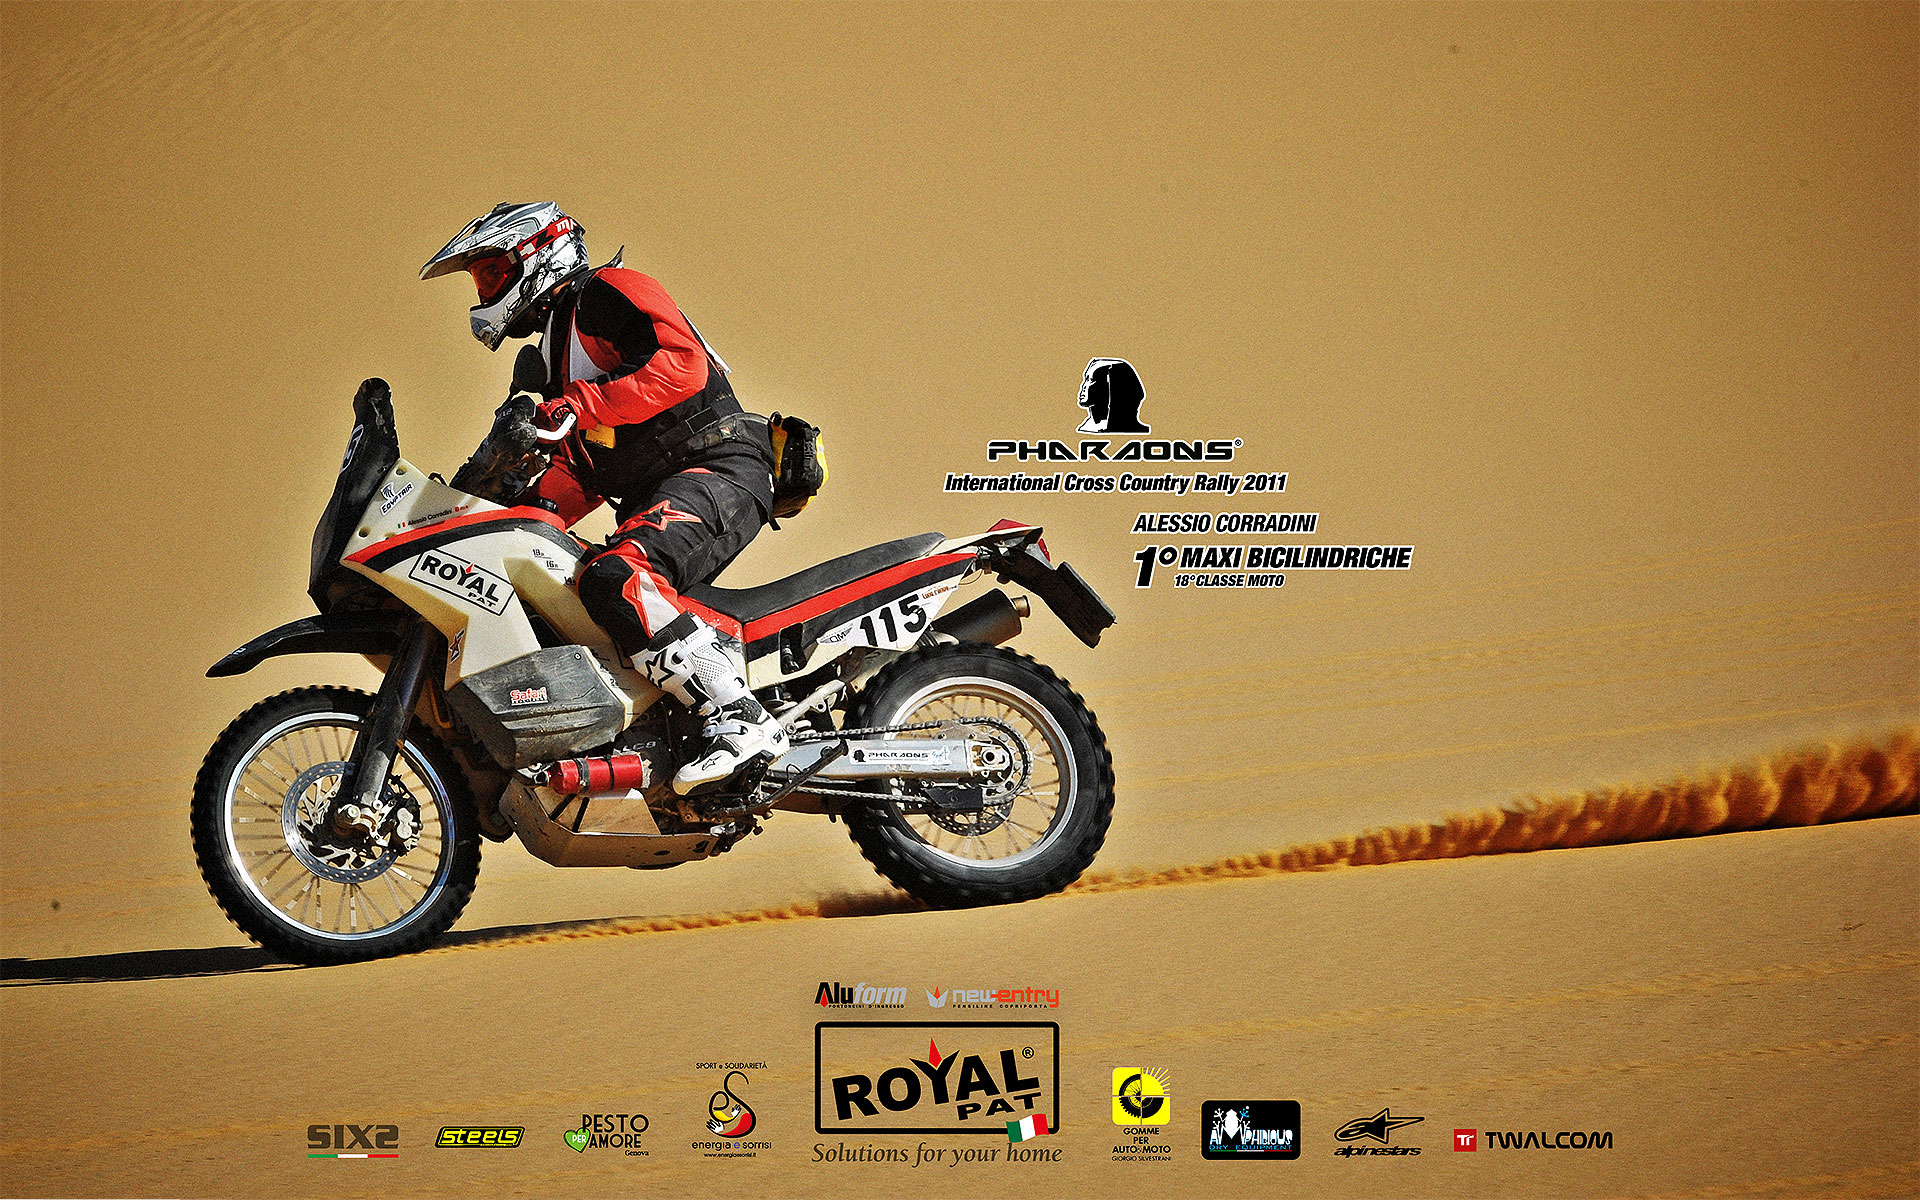 icture taken during Pharaons' Rally 2011 - 1° bicylinder class  ©2011 Edo Bauer & Cristiano Barni